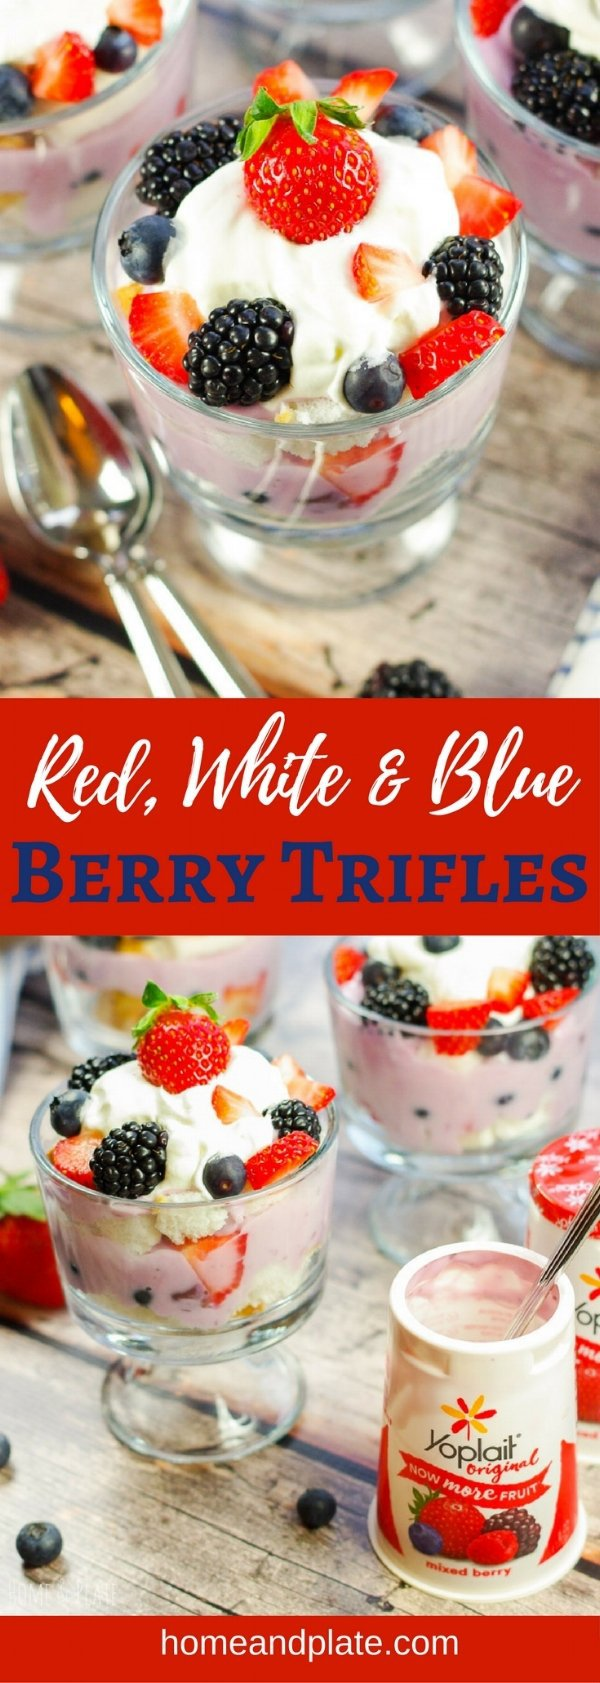 Red, White & Blue Trifle | This easy no-bake layered trifle is made with mixed berry yogurt, fresh fruit and angel food cake. Enjoy a dessert that is creamy, light and sweet any time of year. | www.homeandplate.com | @yoplait